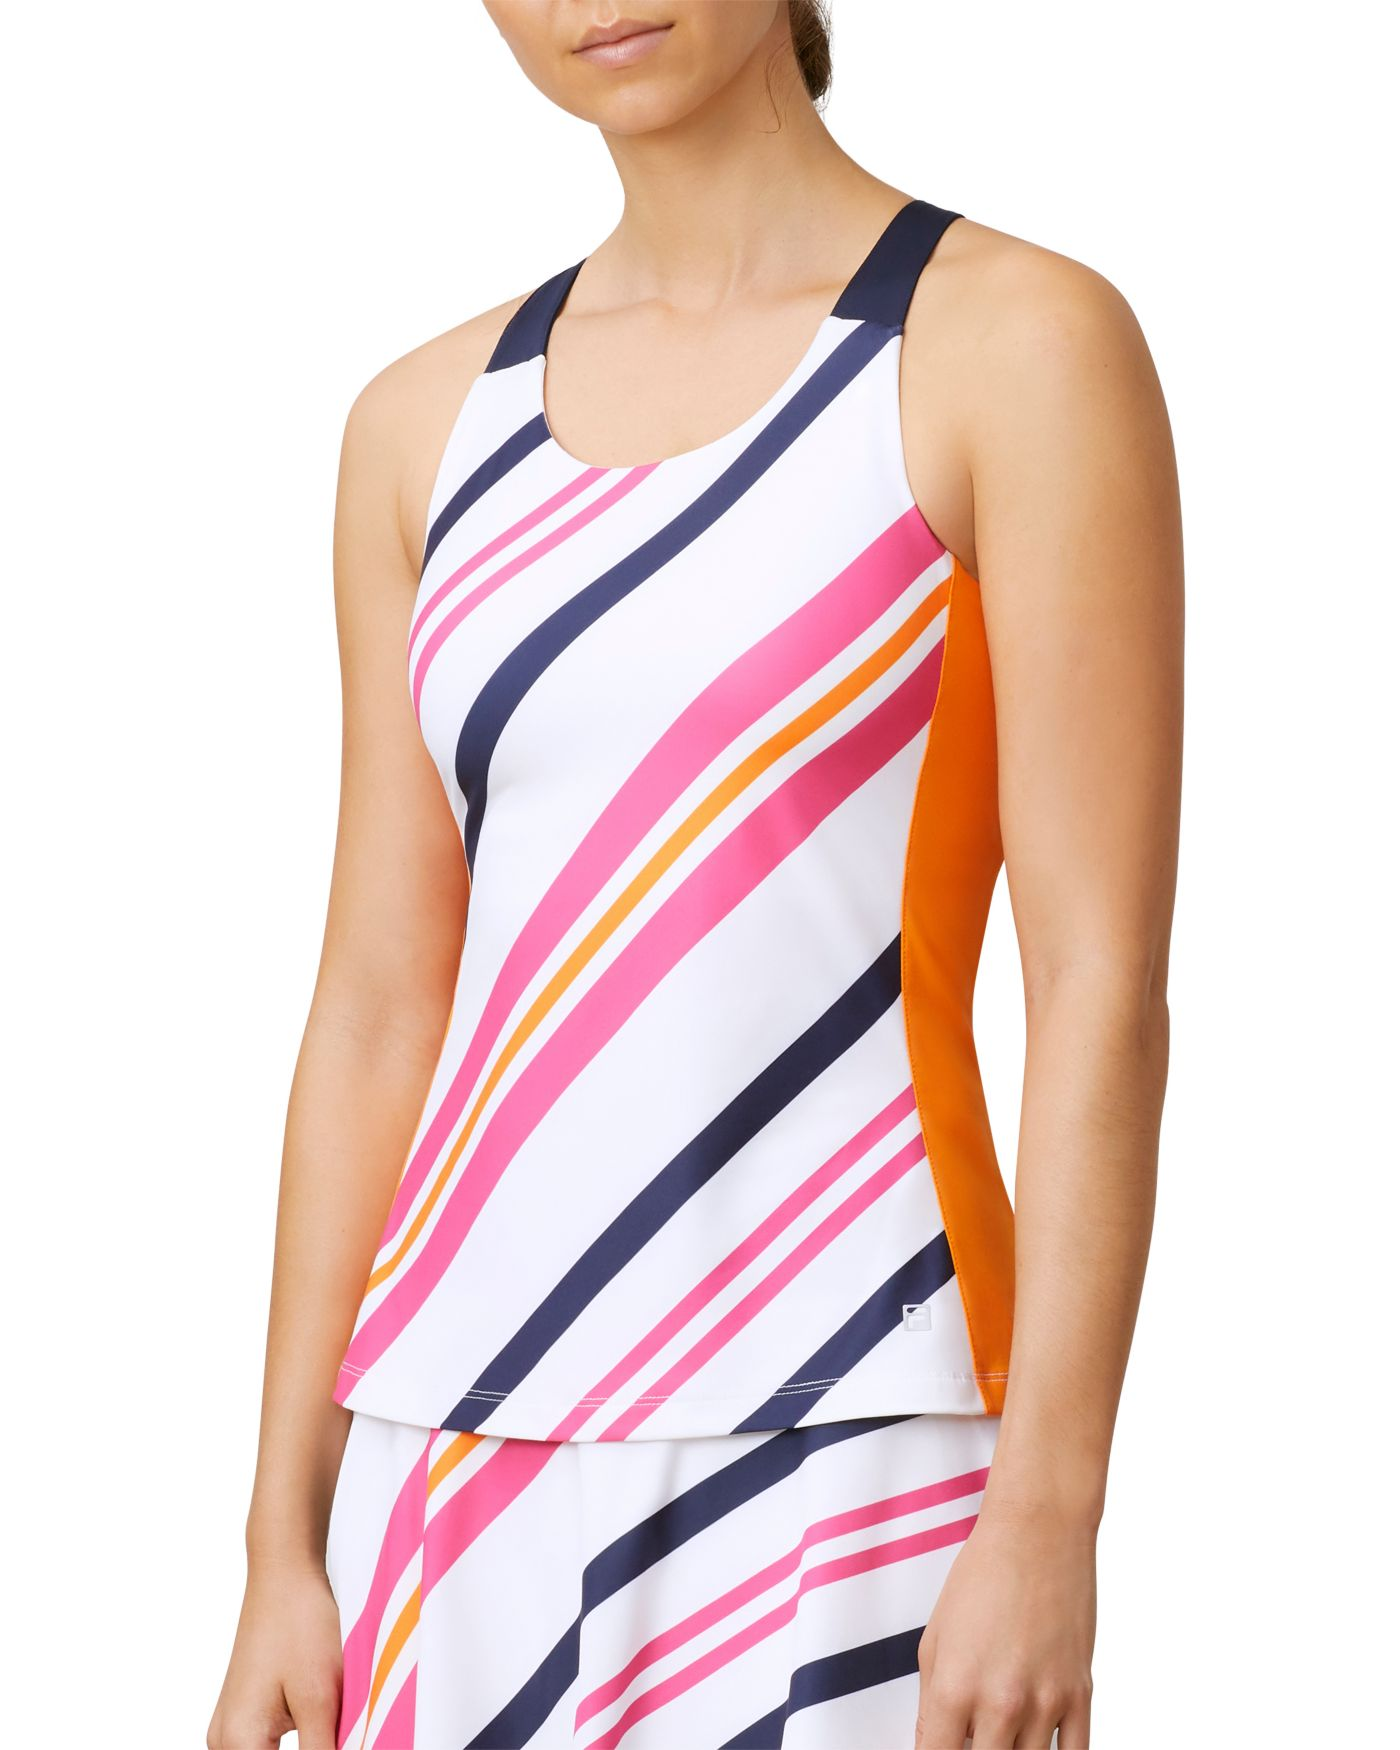 Fila Women's Awning Stripe Tennis Tank